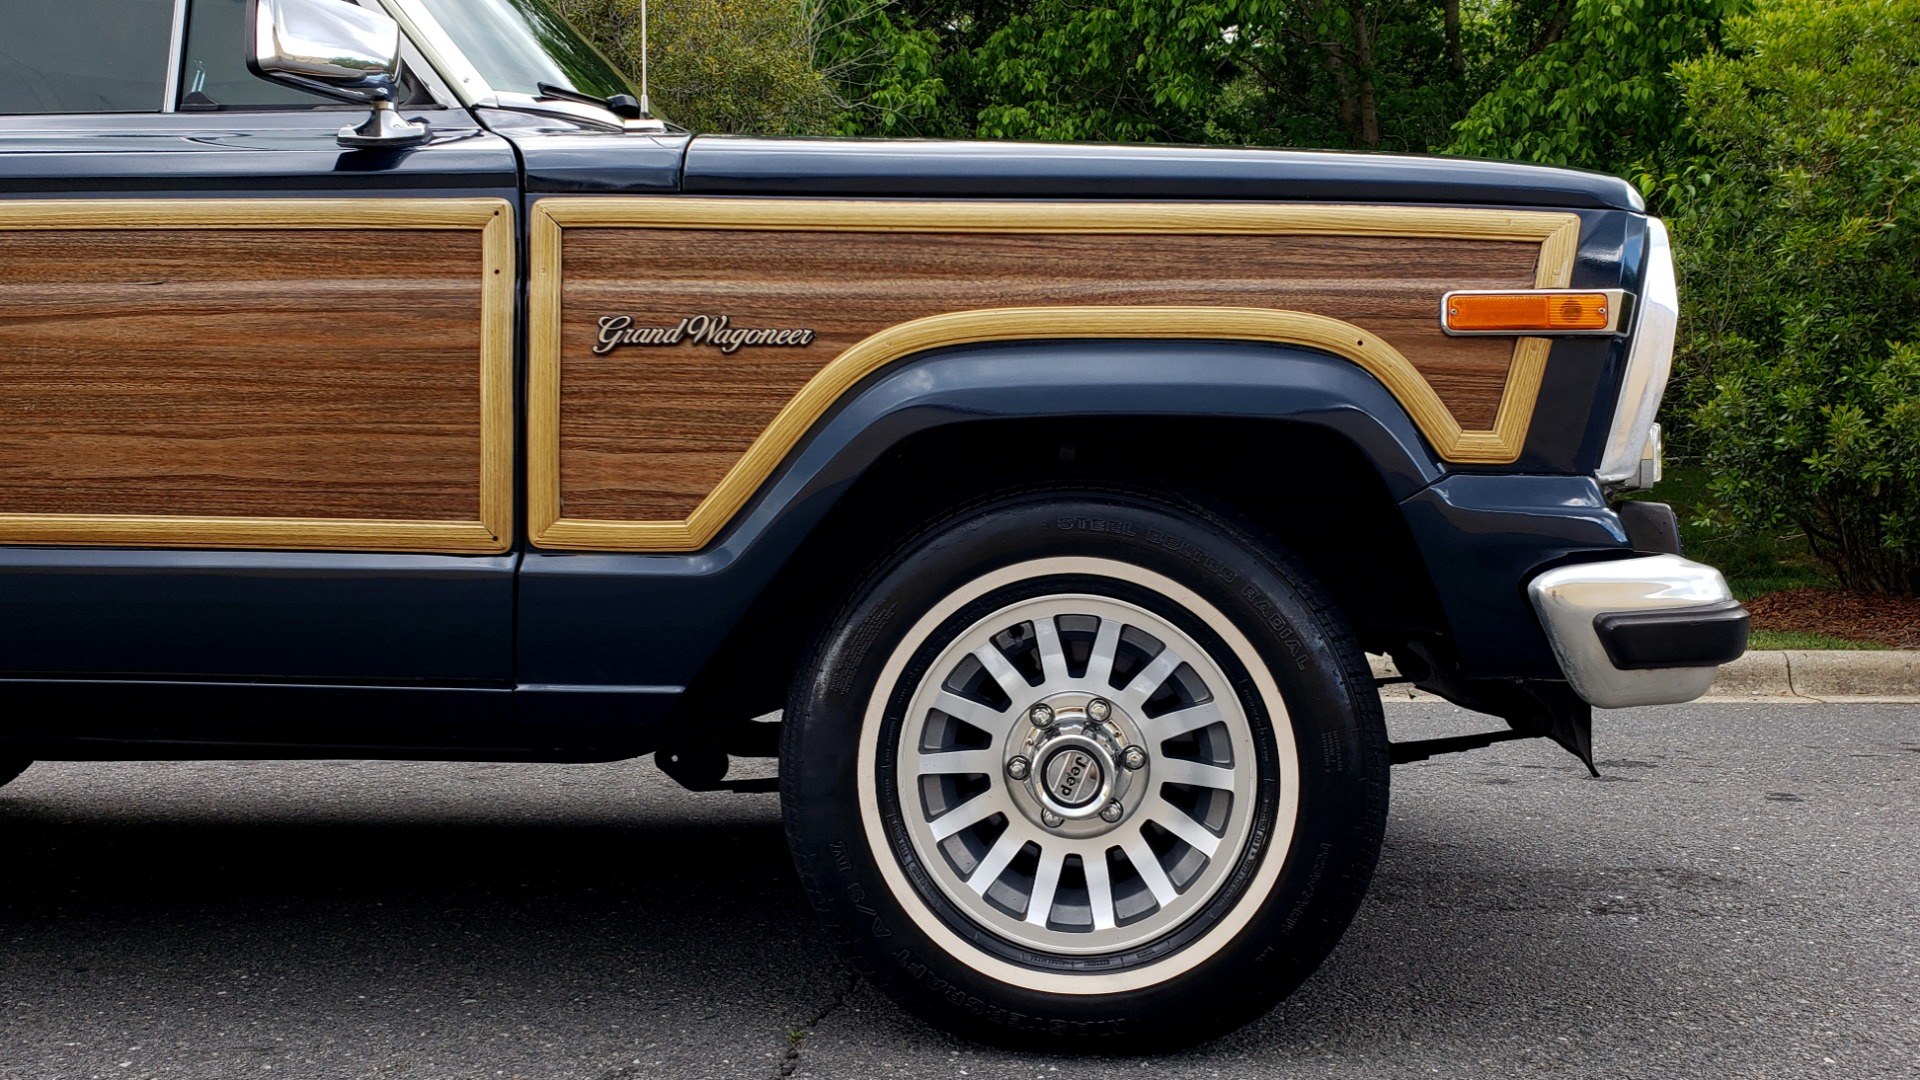 Used 1989 Jeep GRAND WAGONEER 4x4 / 5.9L V8 / 3-SPEED AUTO / PIONEER STEREO for sale Sold at Formula Imports in Charlotte NC 28227 79